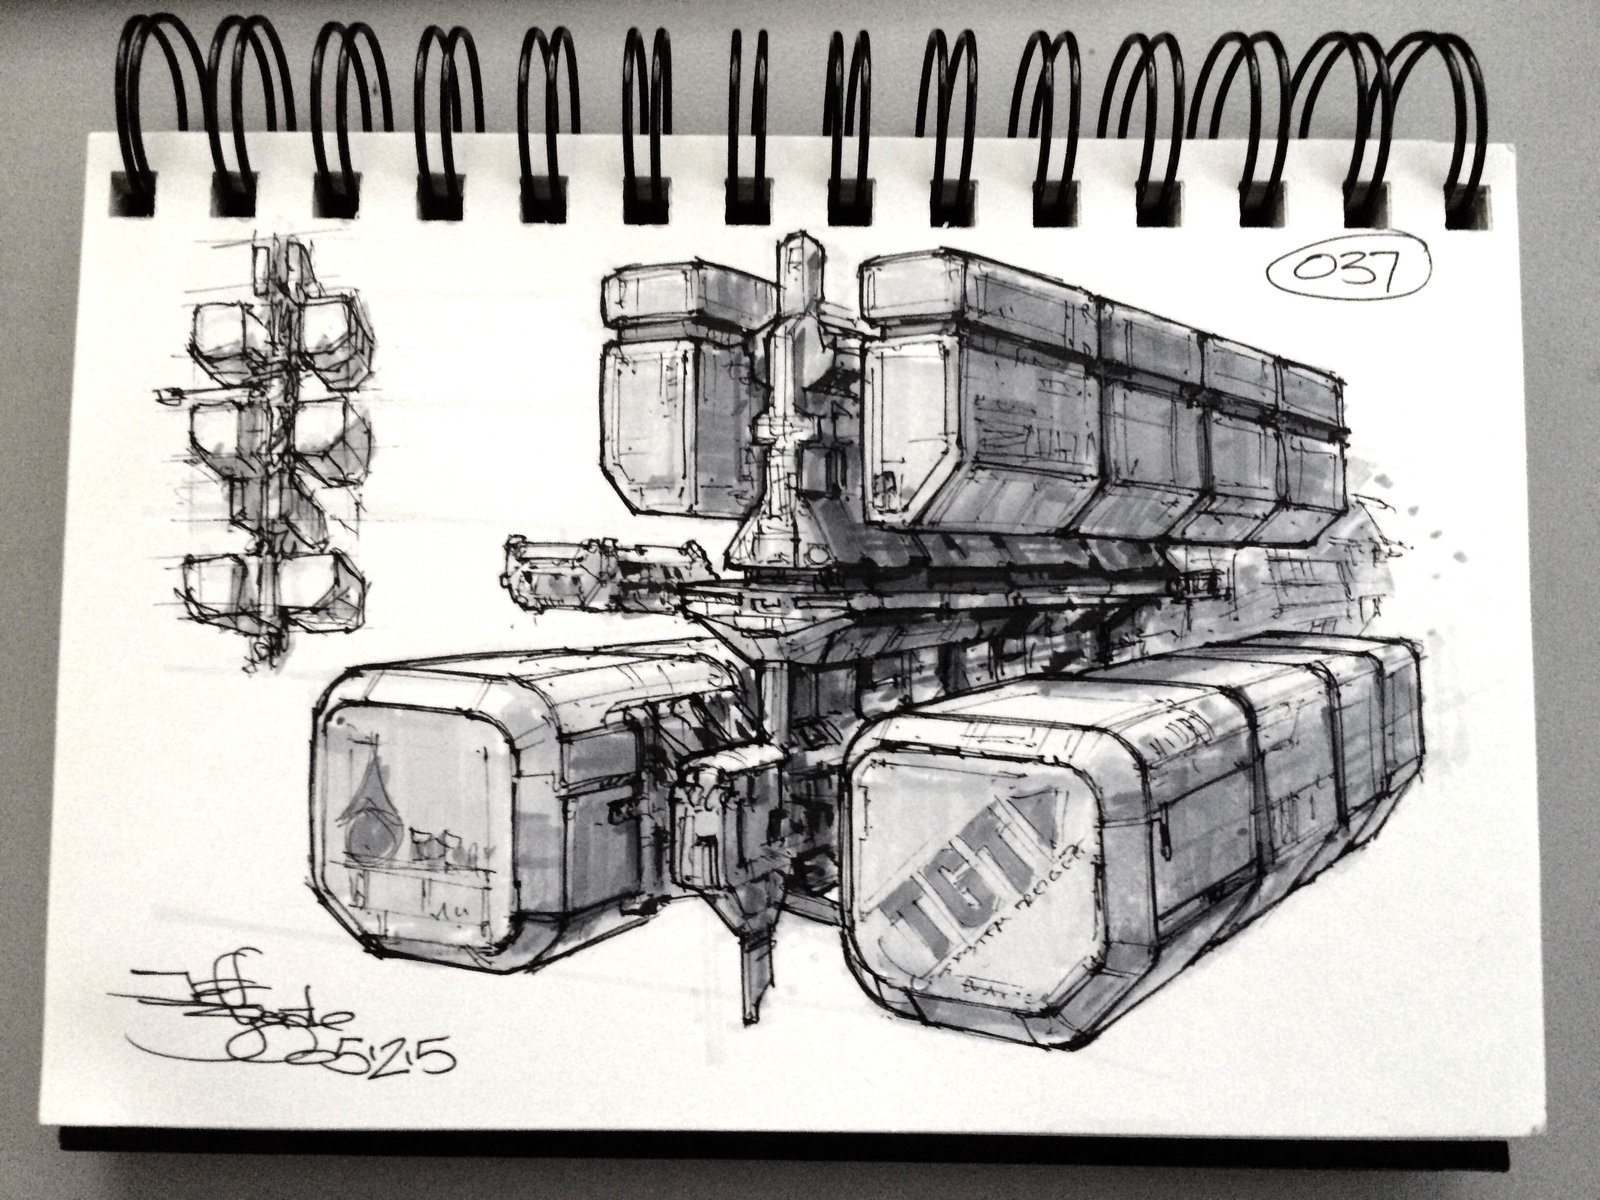 SpaceshipADay 037